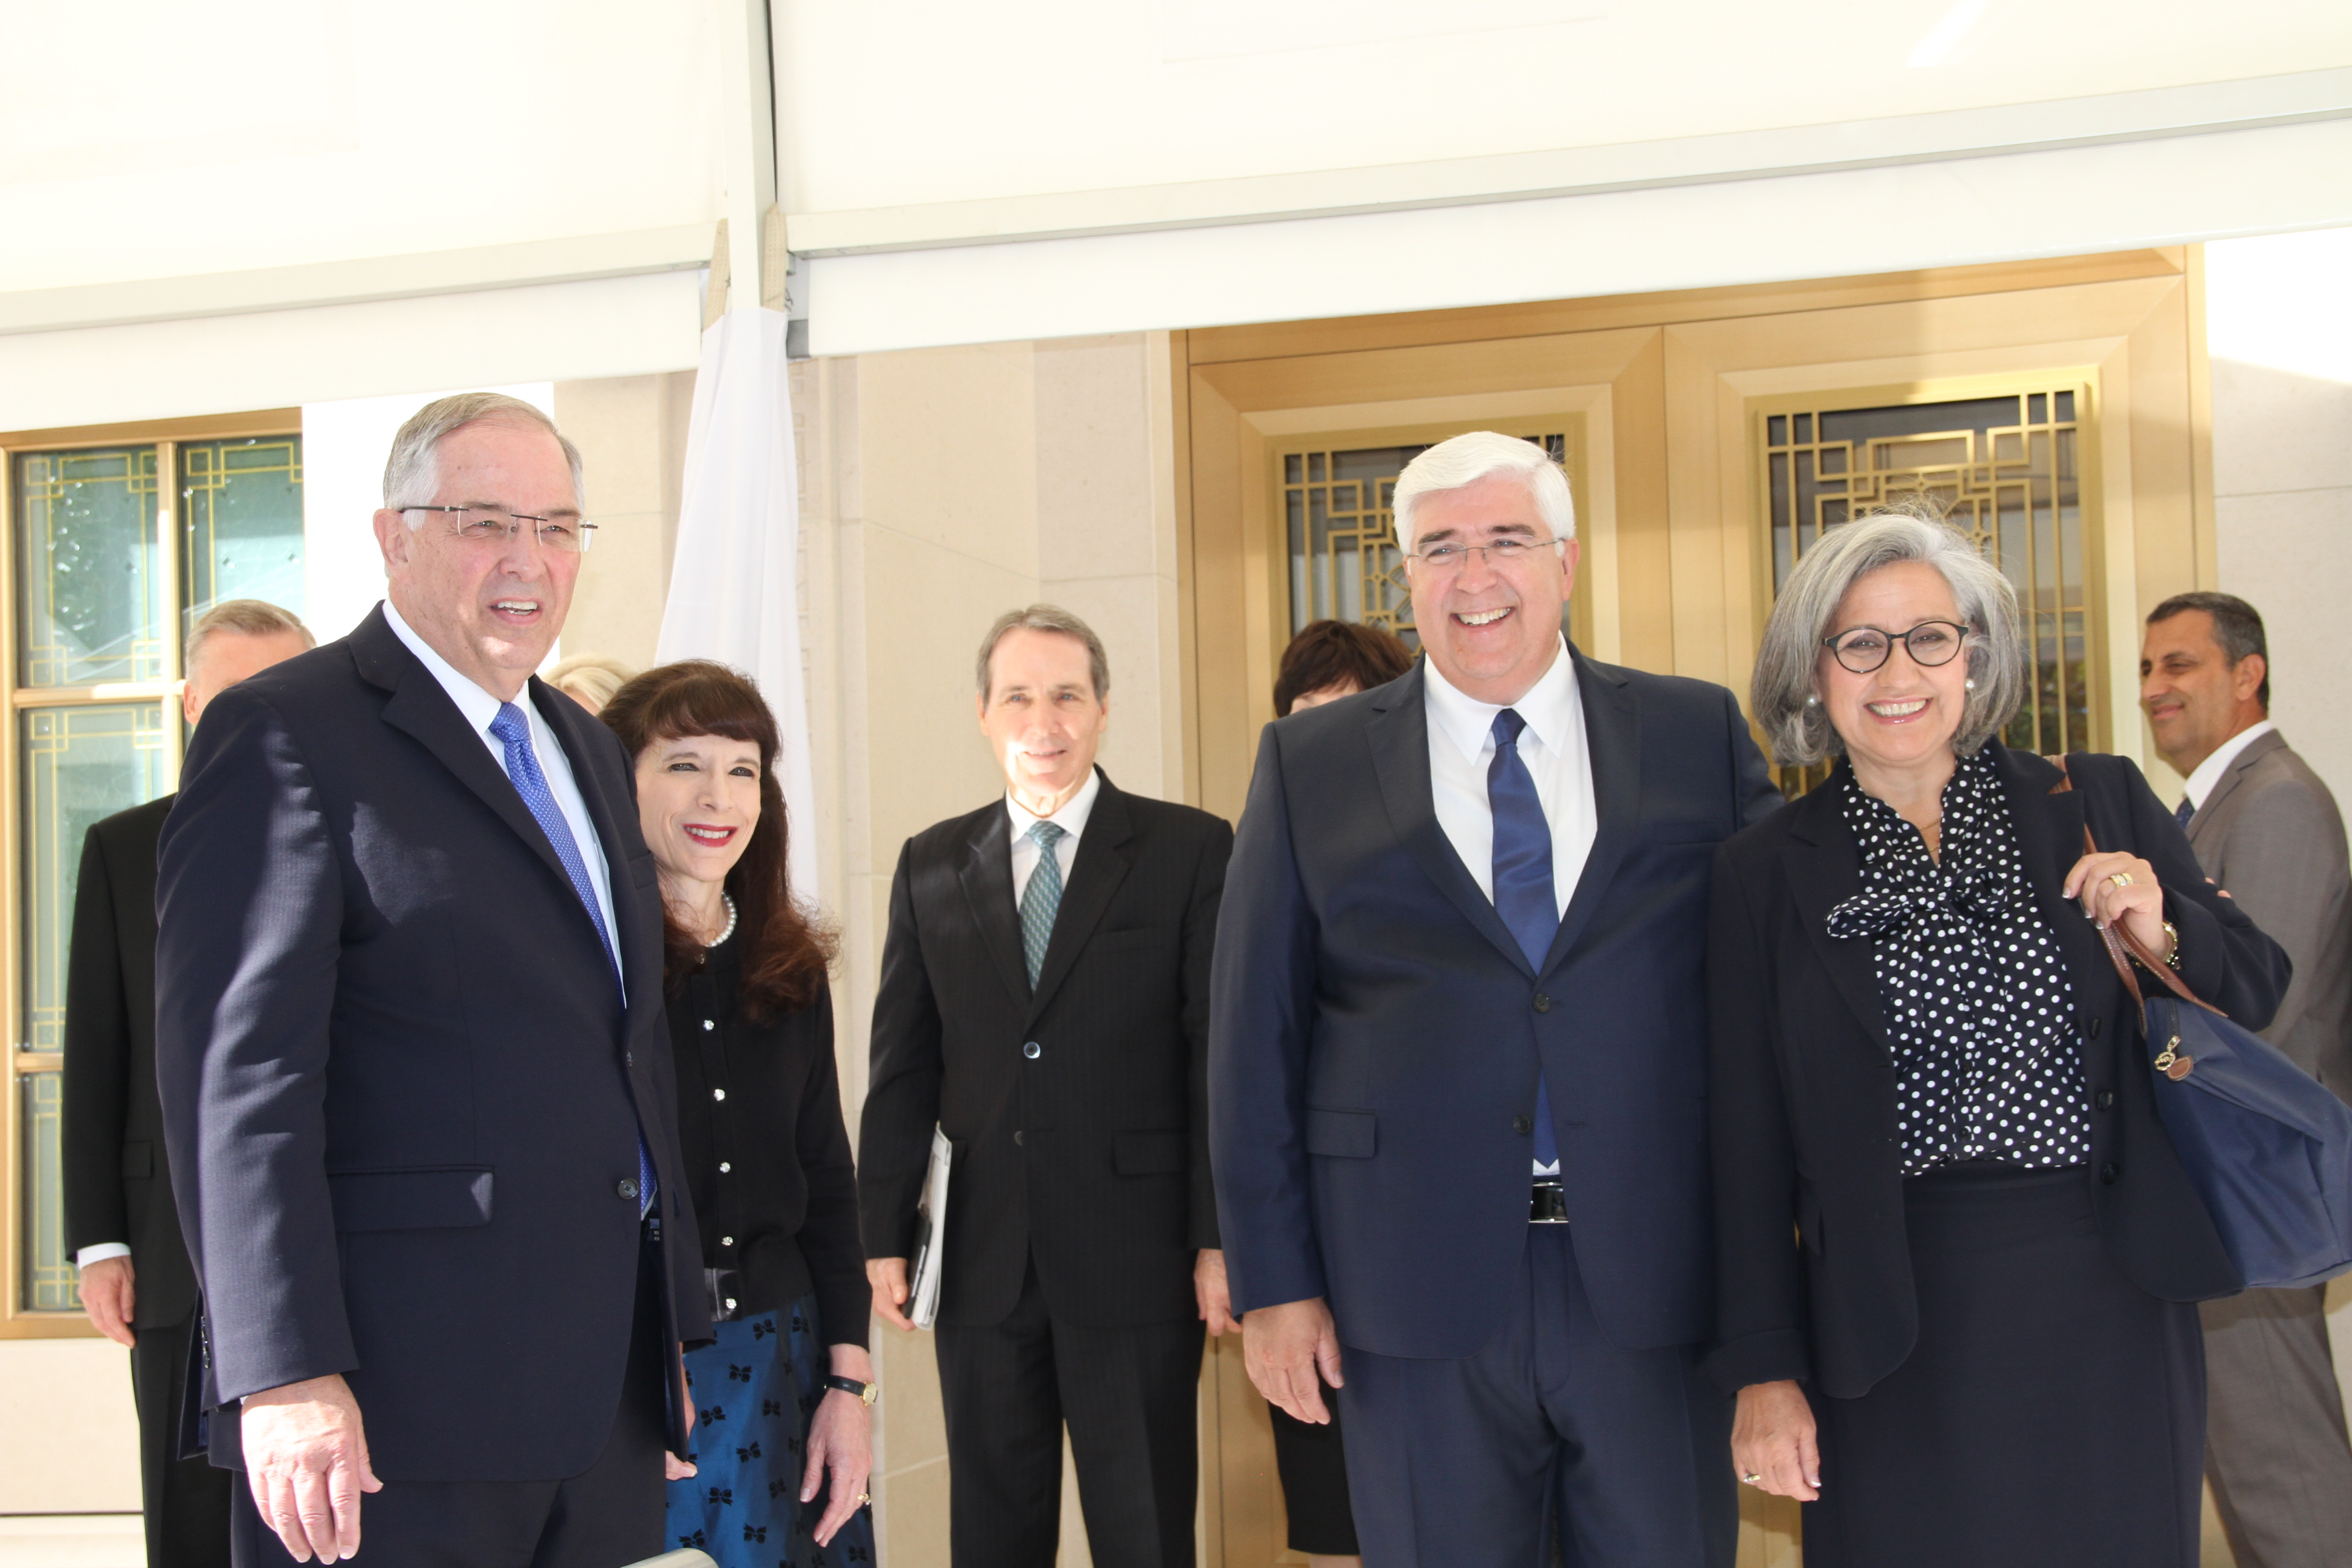 Elder Neil L. Andersen of the Quorum of the Twelve Apostles and his wife, Sister Kathy Andersen, are joined by Elder José A. Teixeira of the Presidency of the Seventy and his wife, Sister Filomena Teixeira following their walk-through of the Lisbon Portugal Temple on Saturday, Sept. 14, 2019.